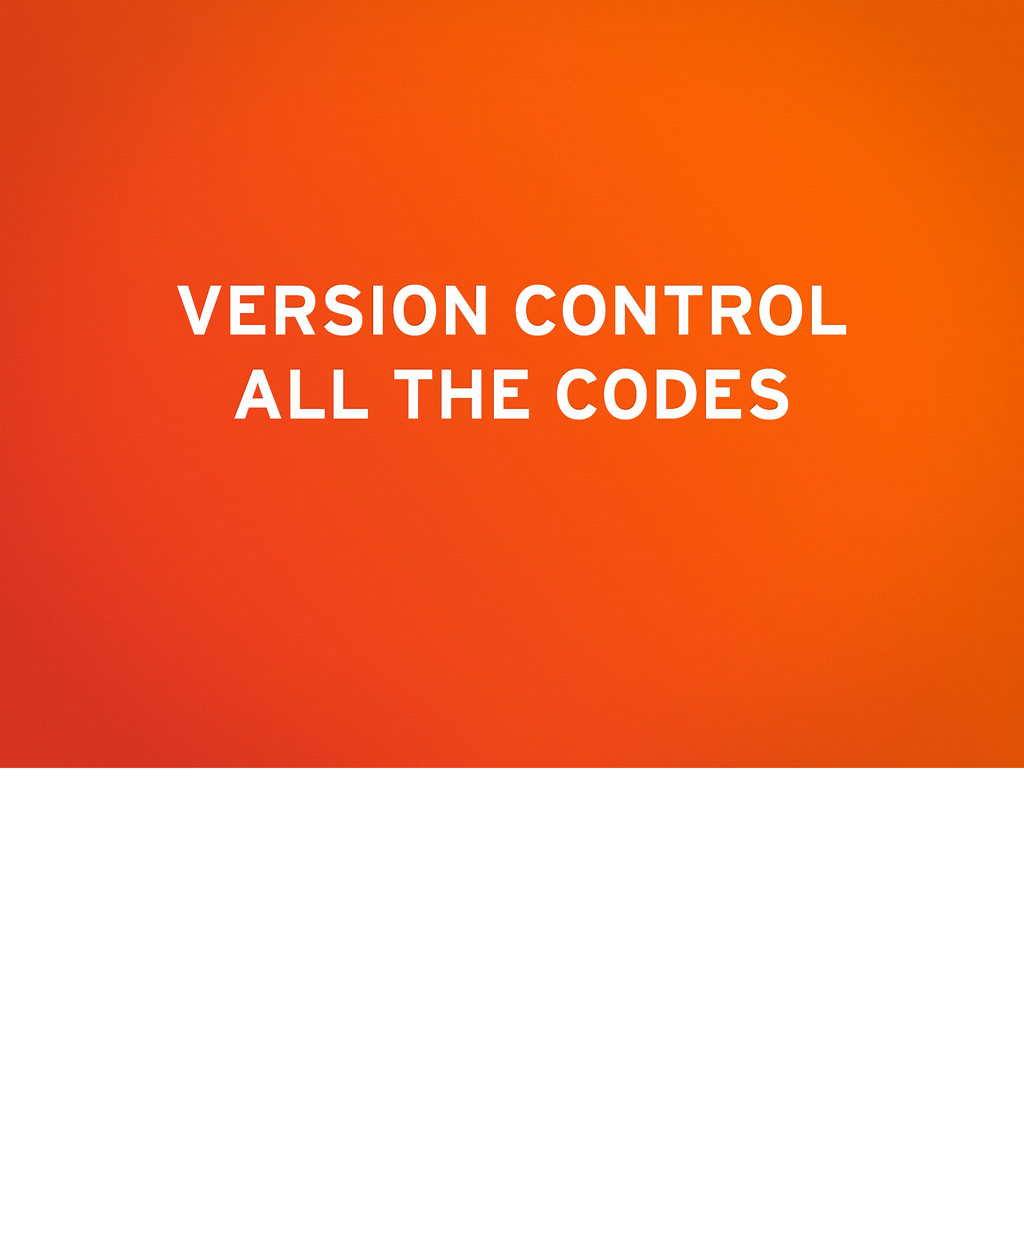 VERSION CONTROL ALL THE CODES